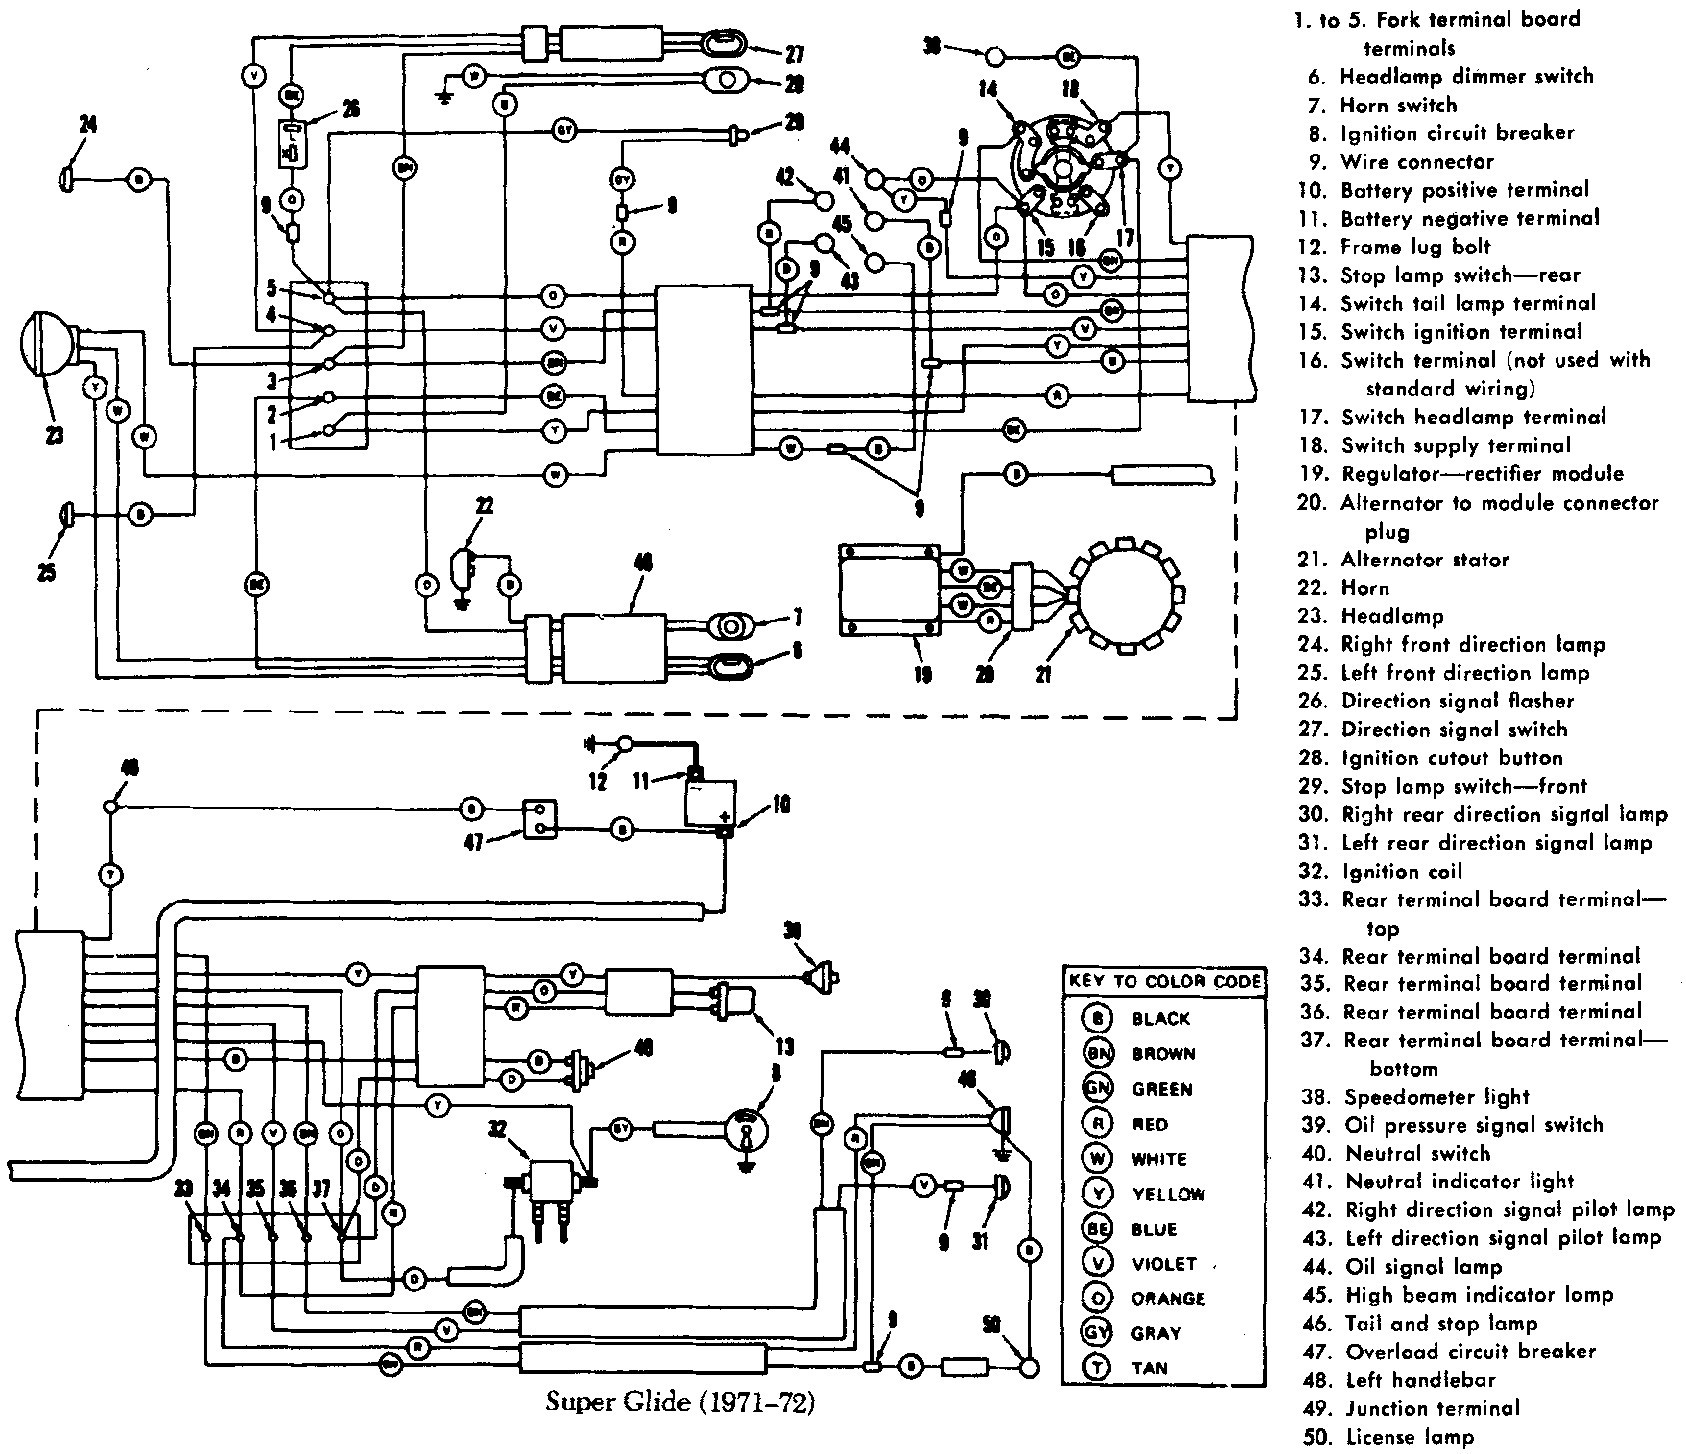 1987 flht wiring diagram